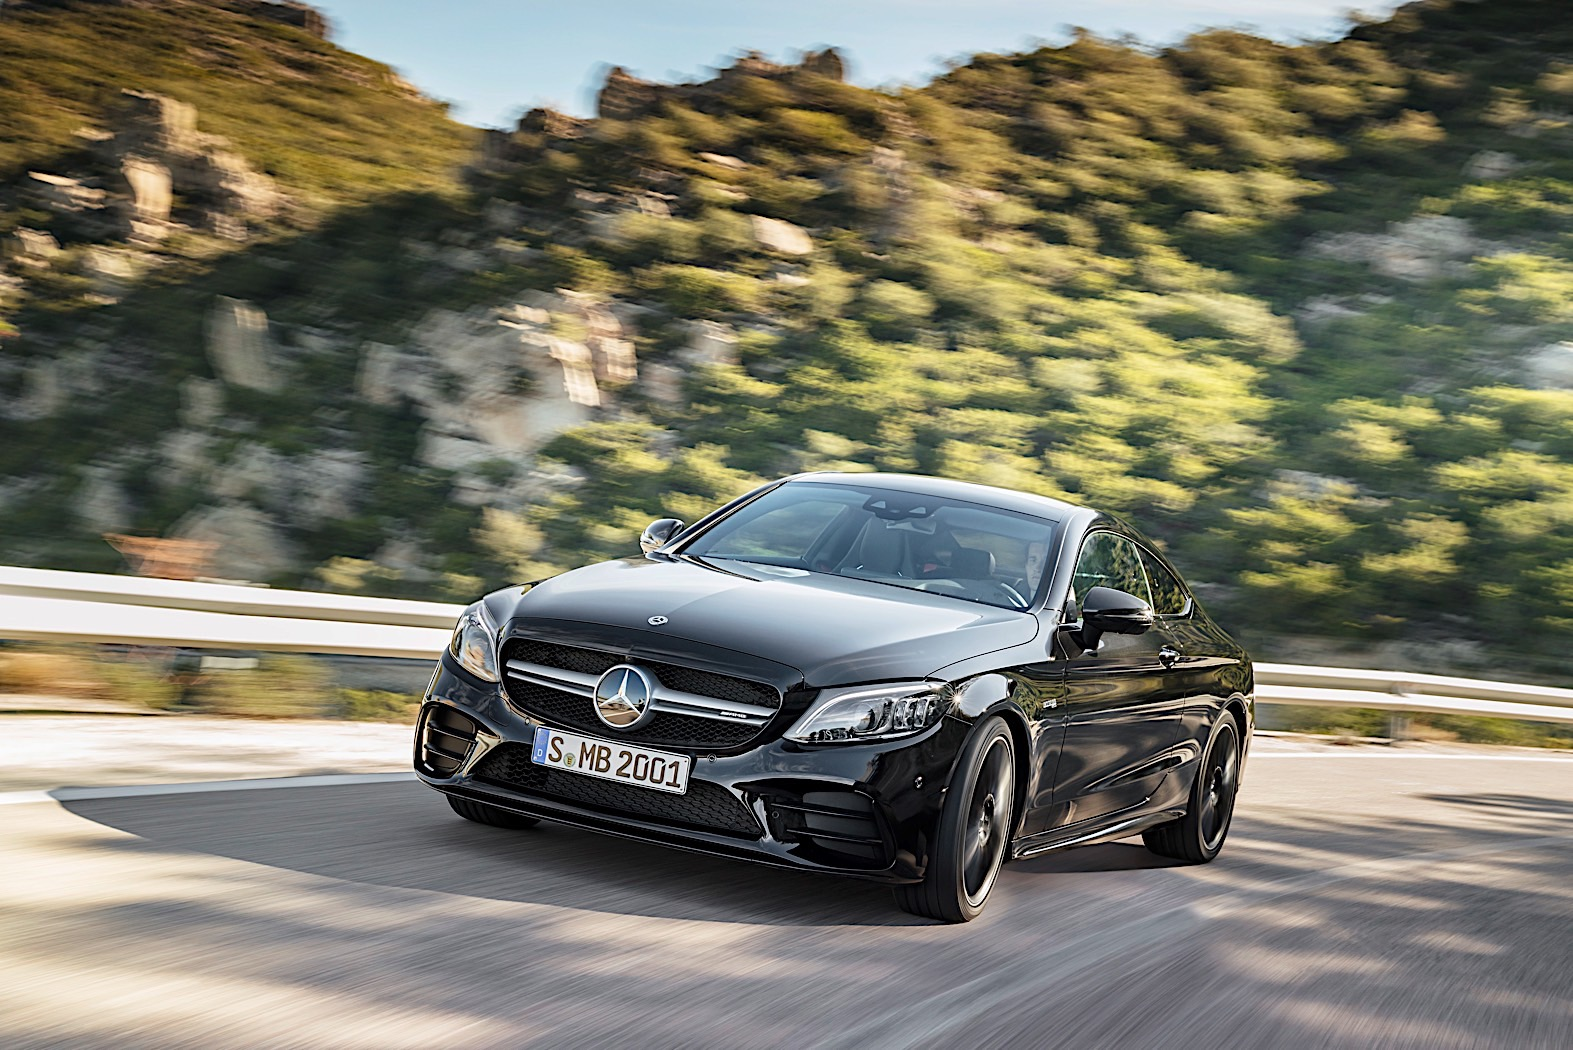 refreshed 2019 mercedes amg c43 coupe and cabrio bring more power autoevolution. Black Bedroom Furniture Sets. Home Design Ideas